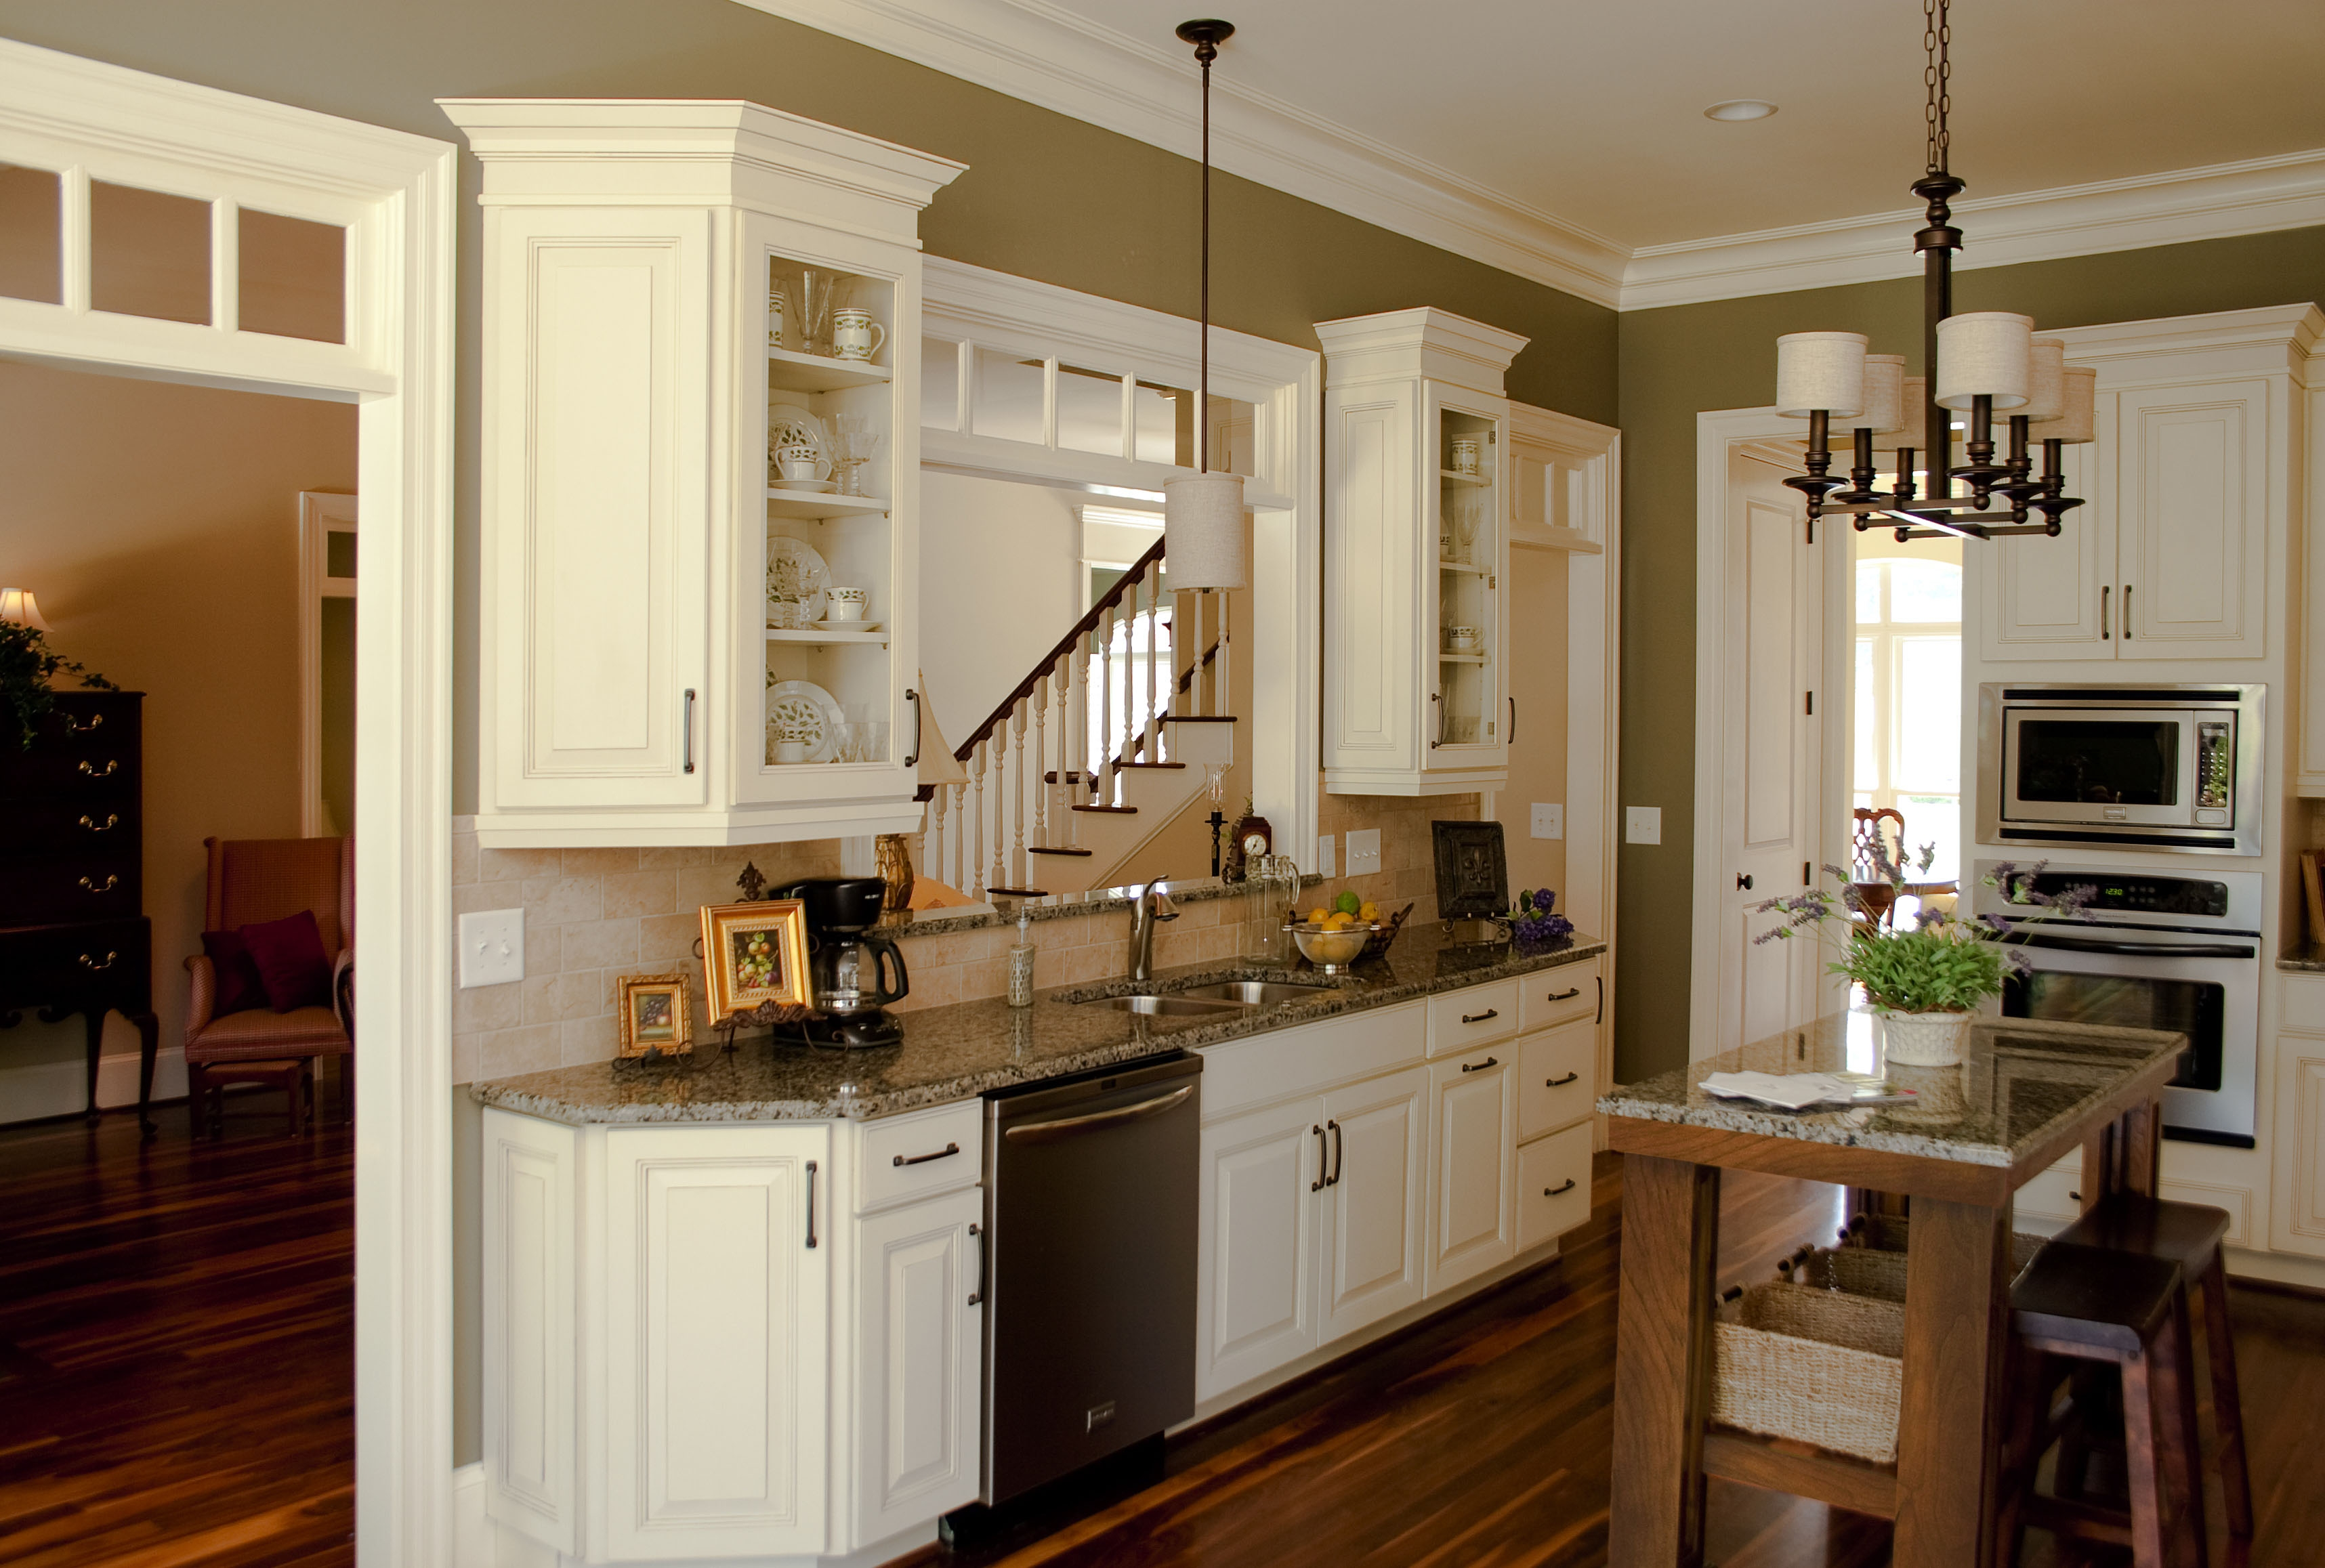 Angled End Kitchen Cabinet3432 X 2315